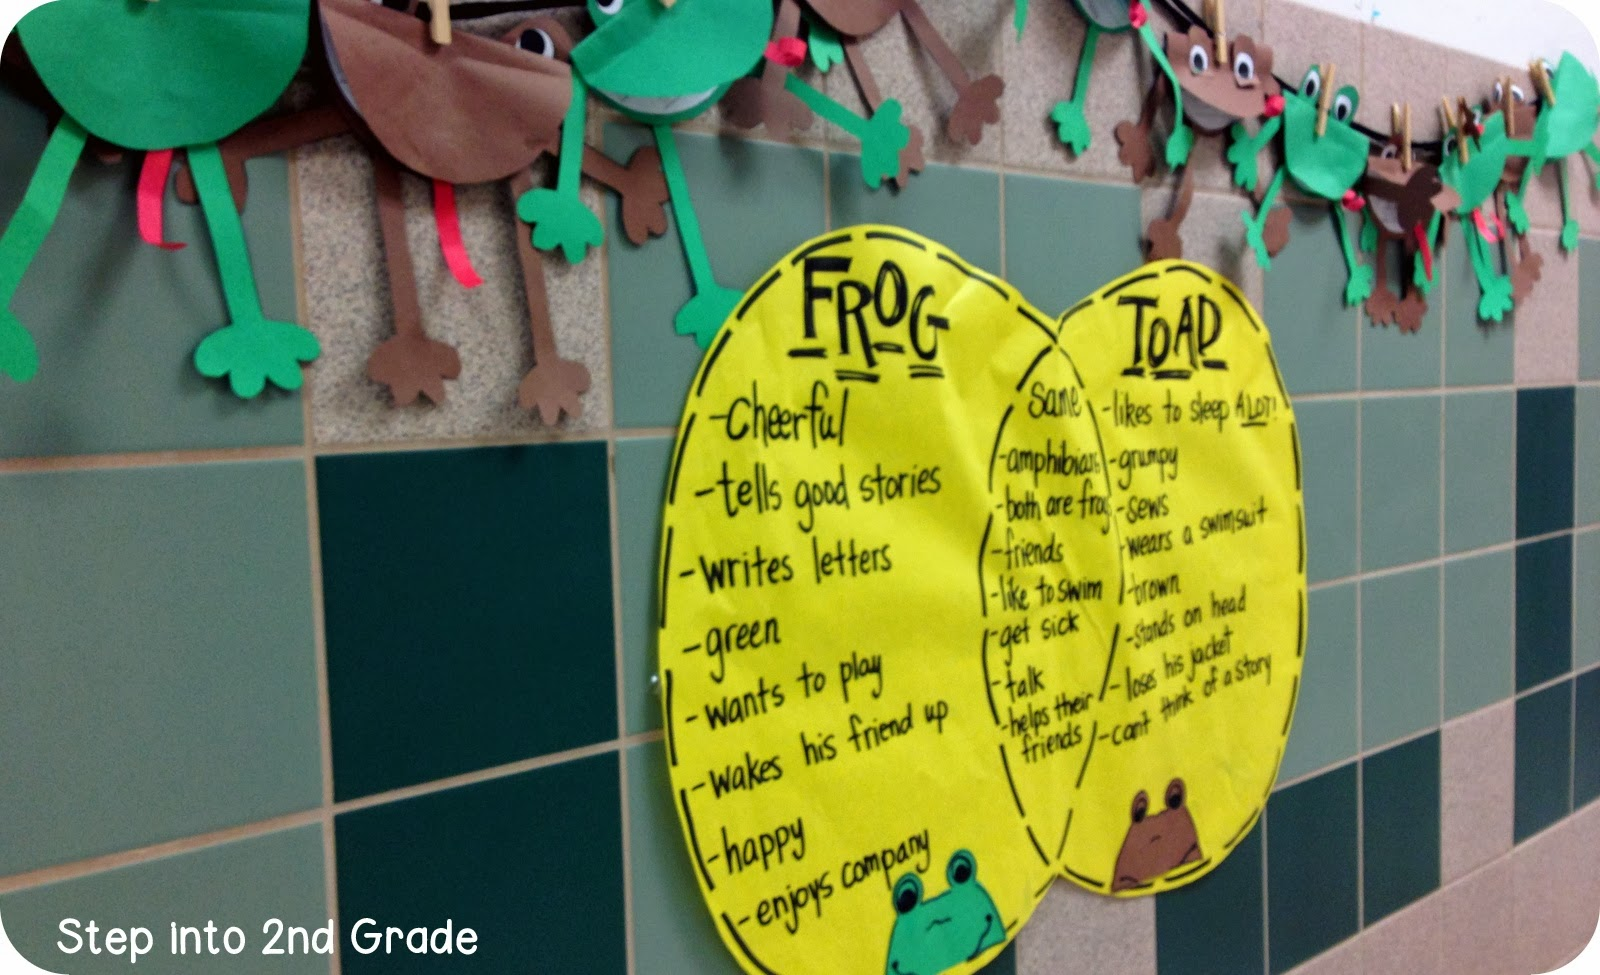 Frog And Toad Venn Diagram Fujitsu Ten Wiring Step Into 2nd Grade With Mrs Lemons Frogs Addition